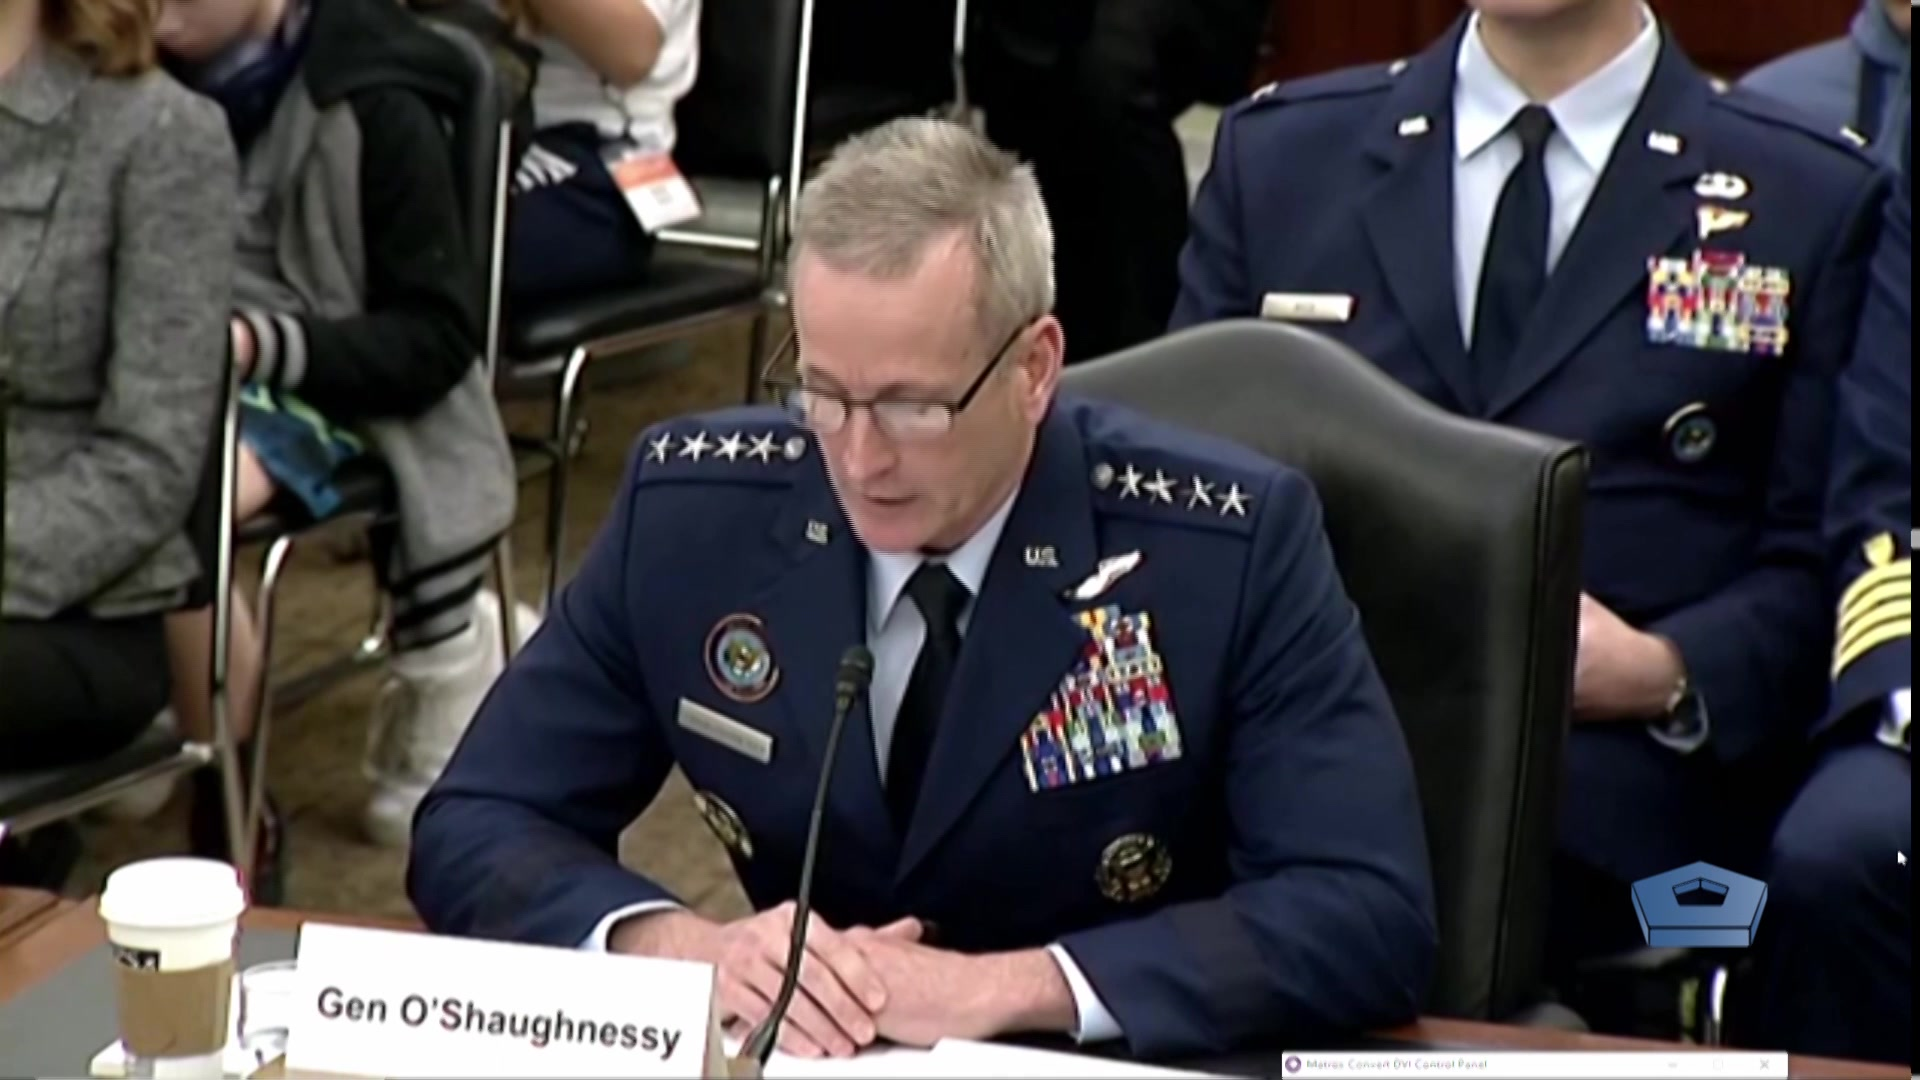 An Air Force general speaks at a table.